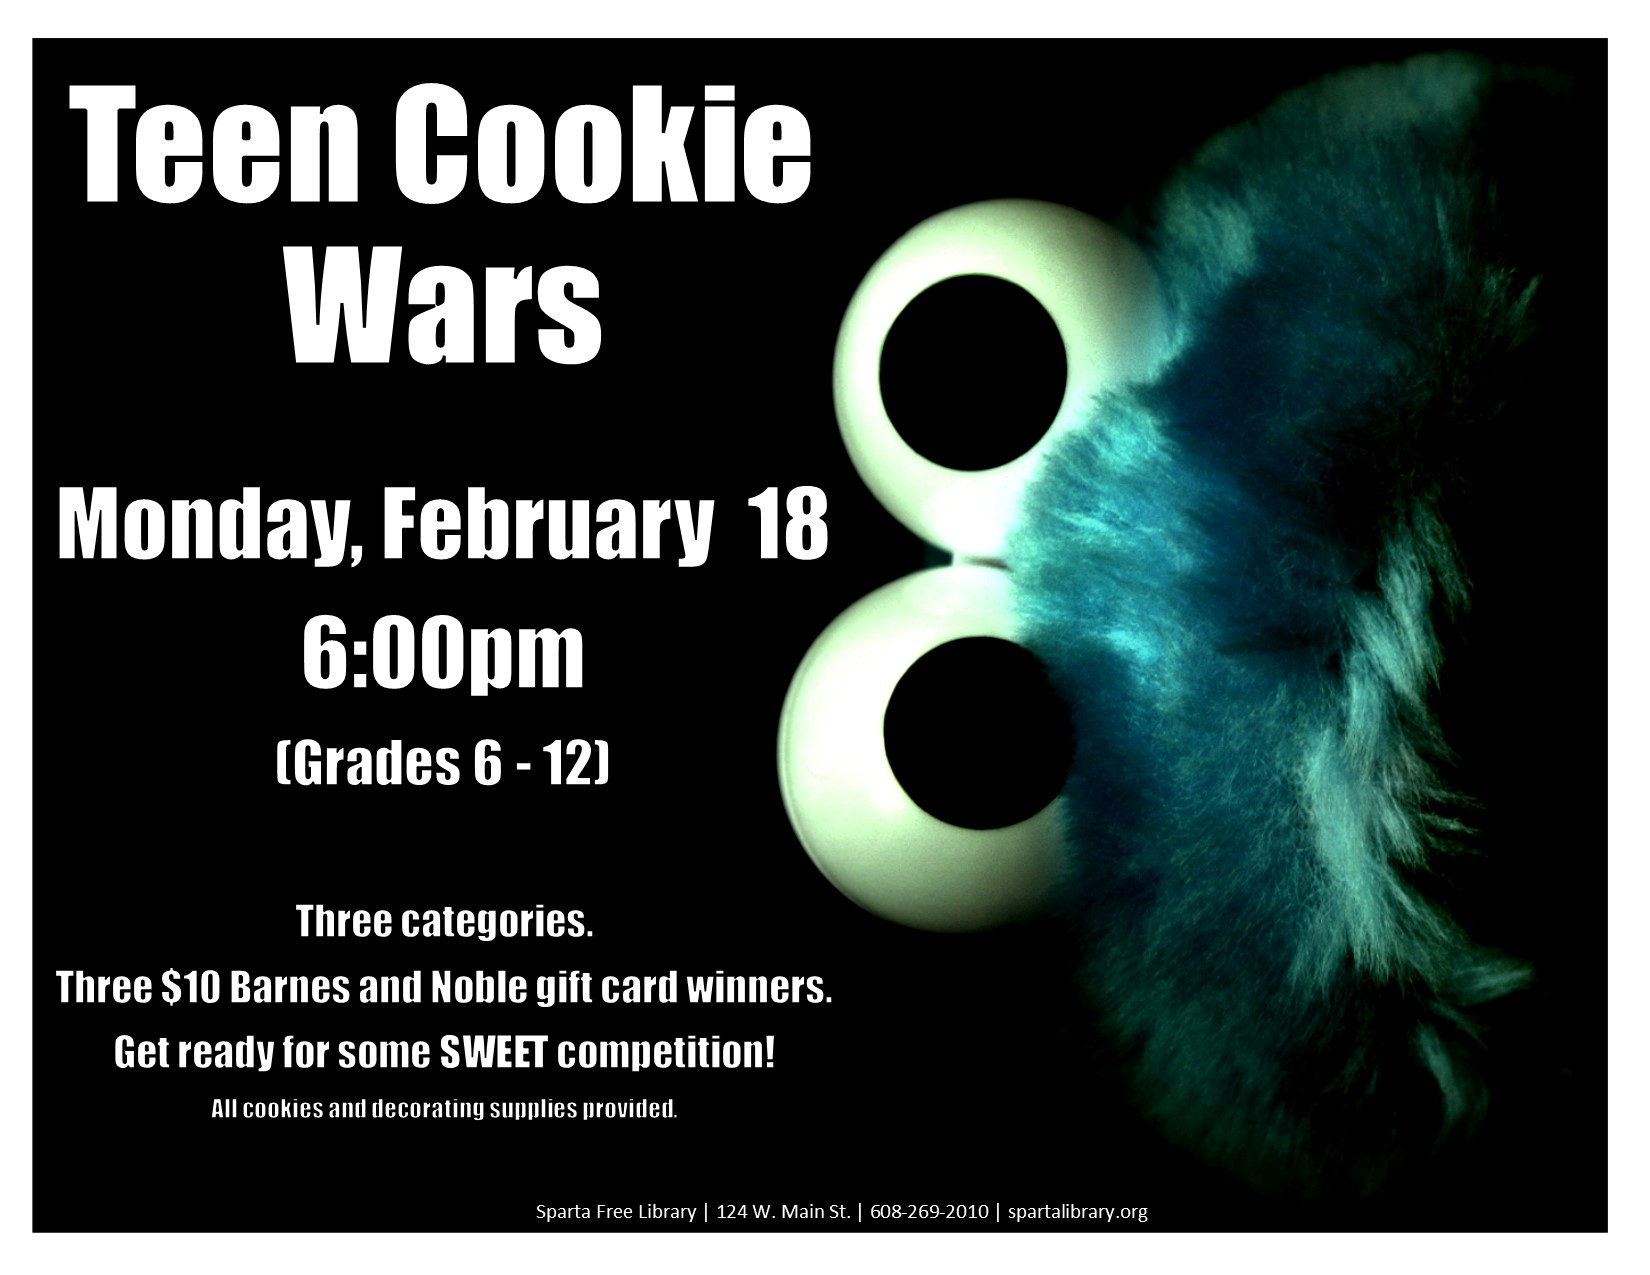 Teen Cookie Wars poster 2019